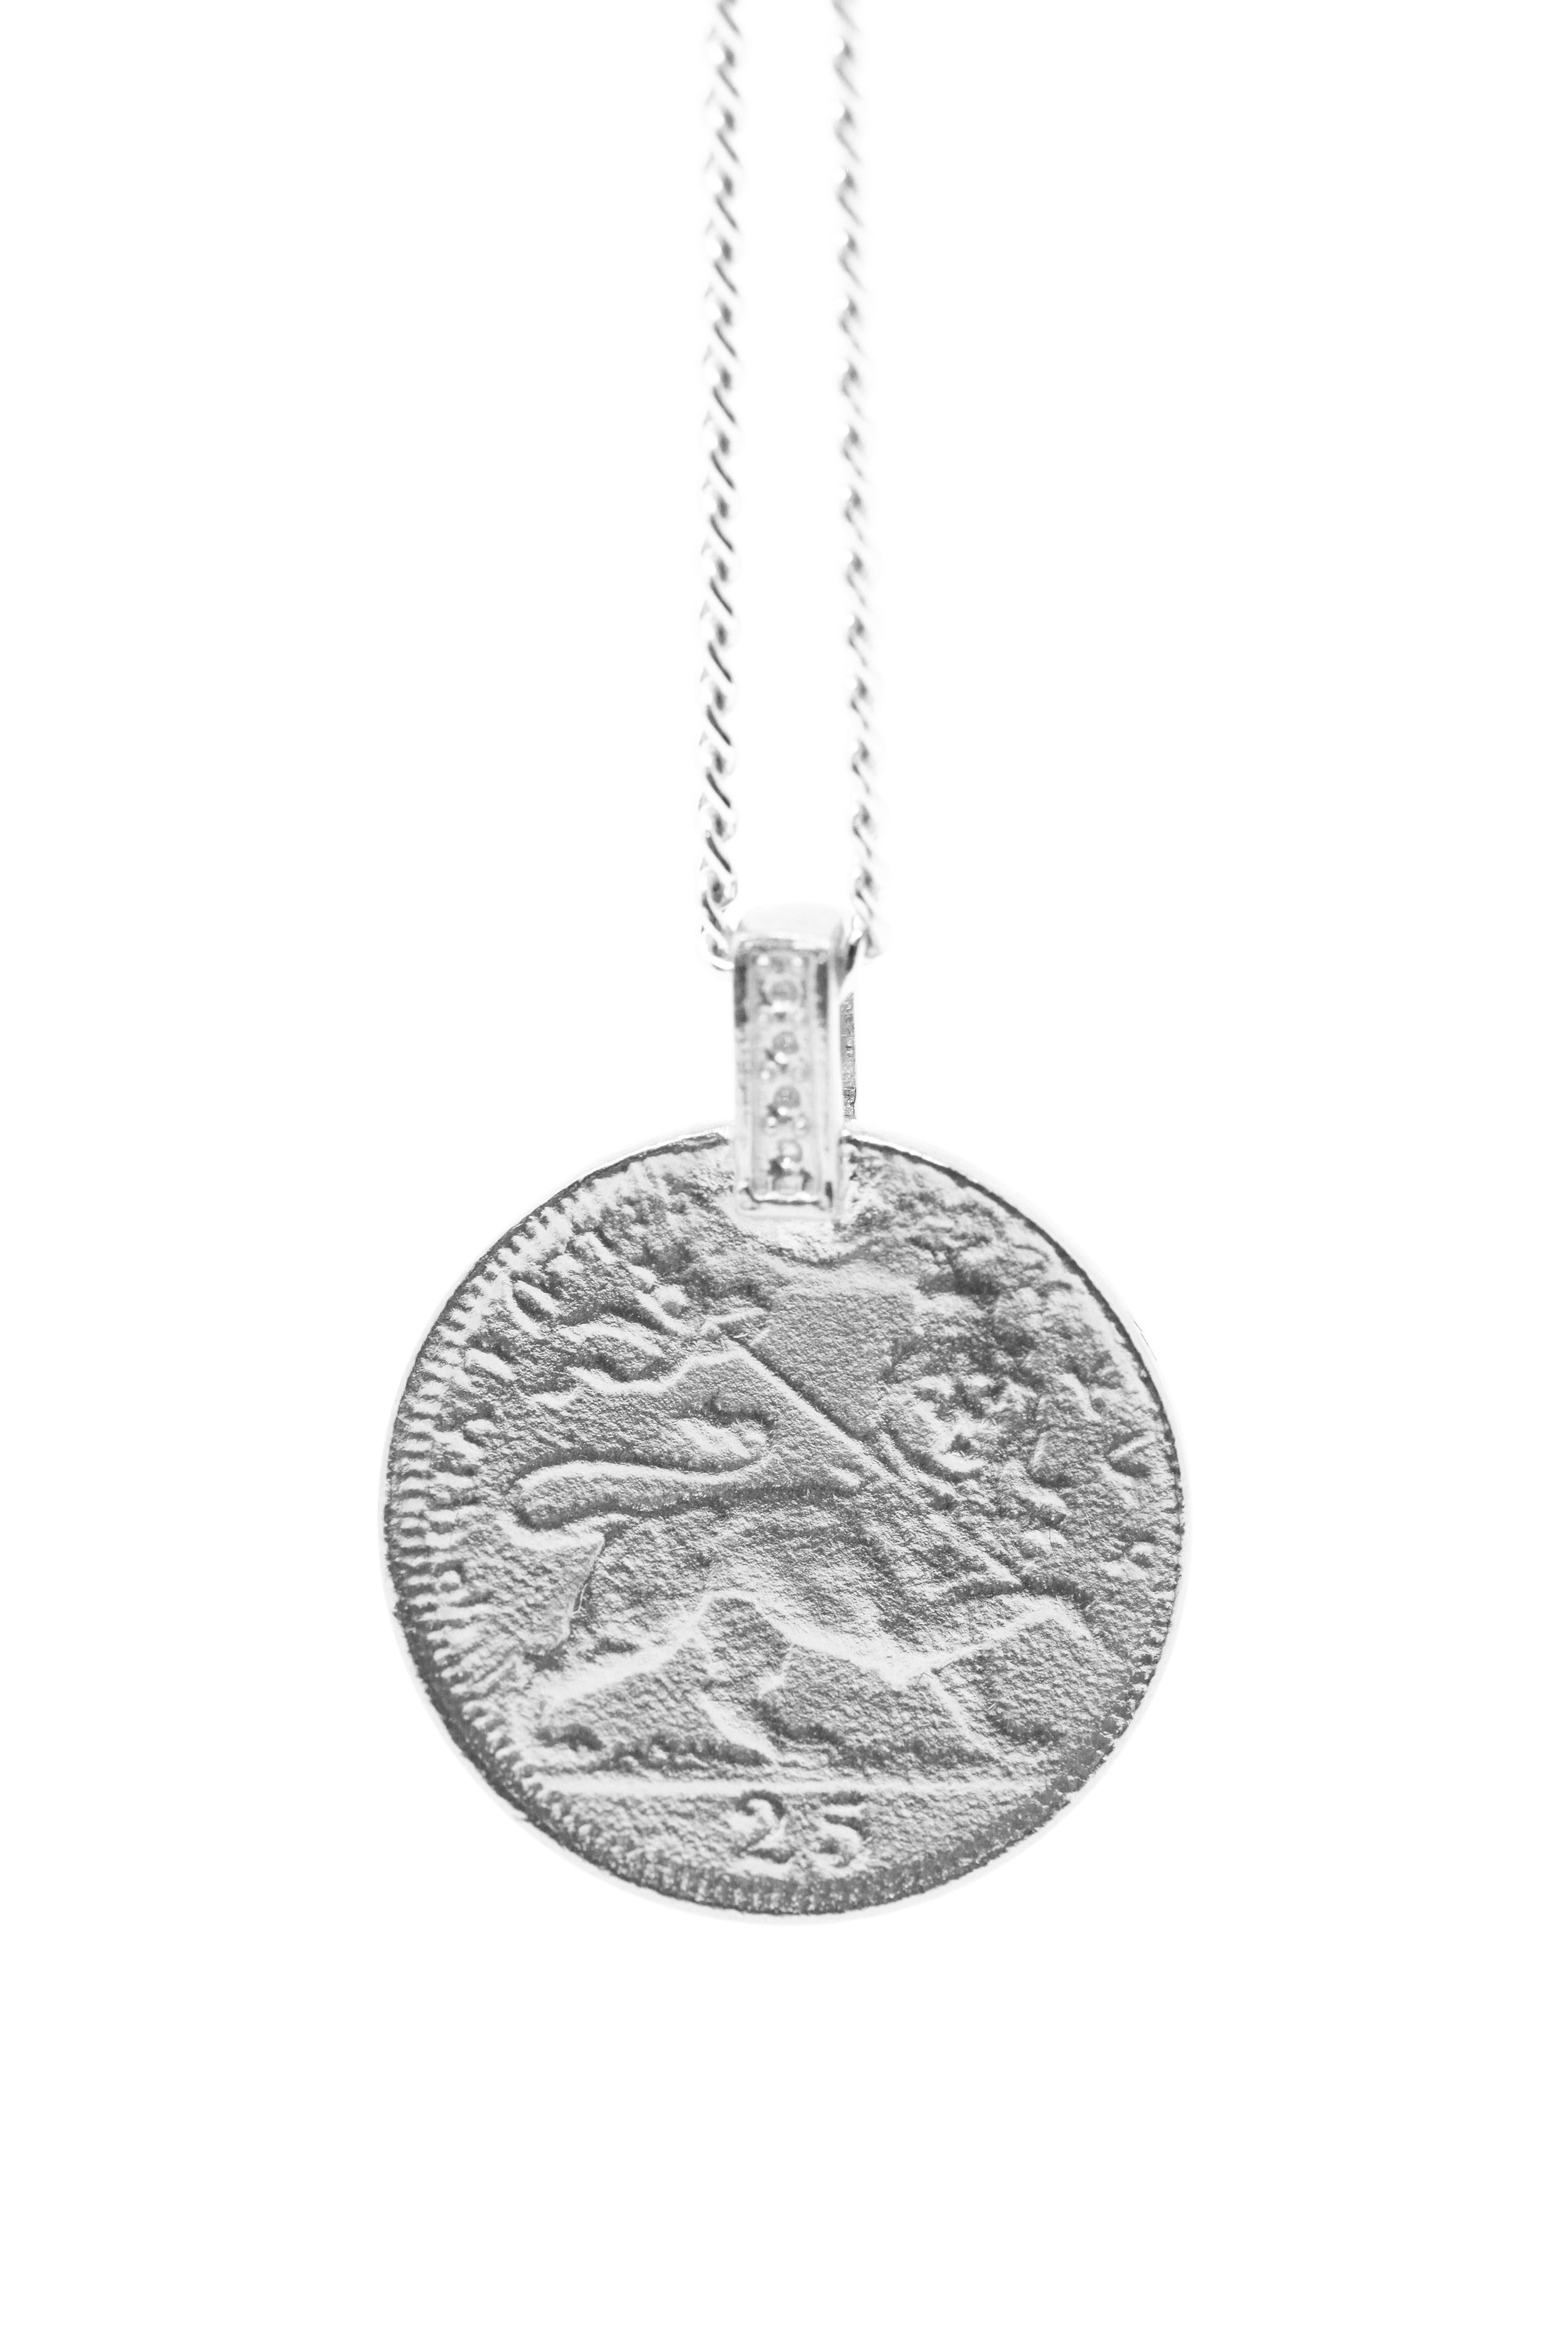 THE RAS TAFARI Coin Necklace Sterling Silver